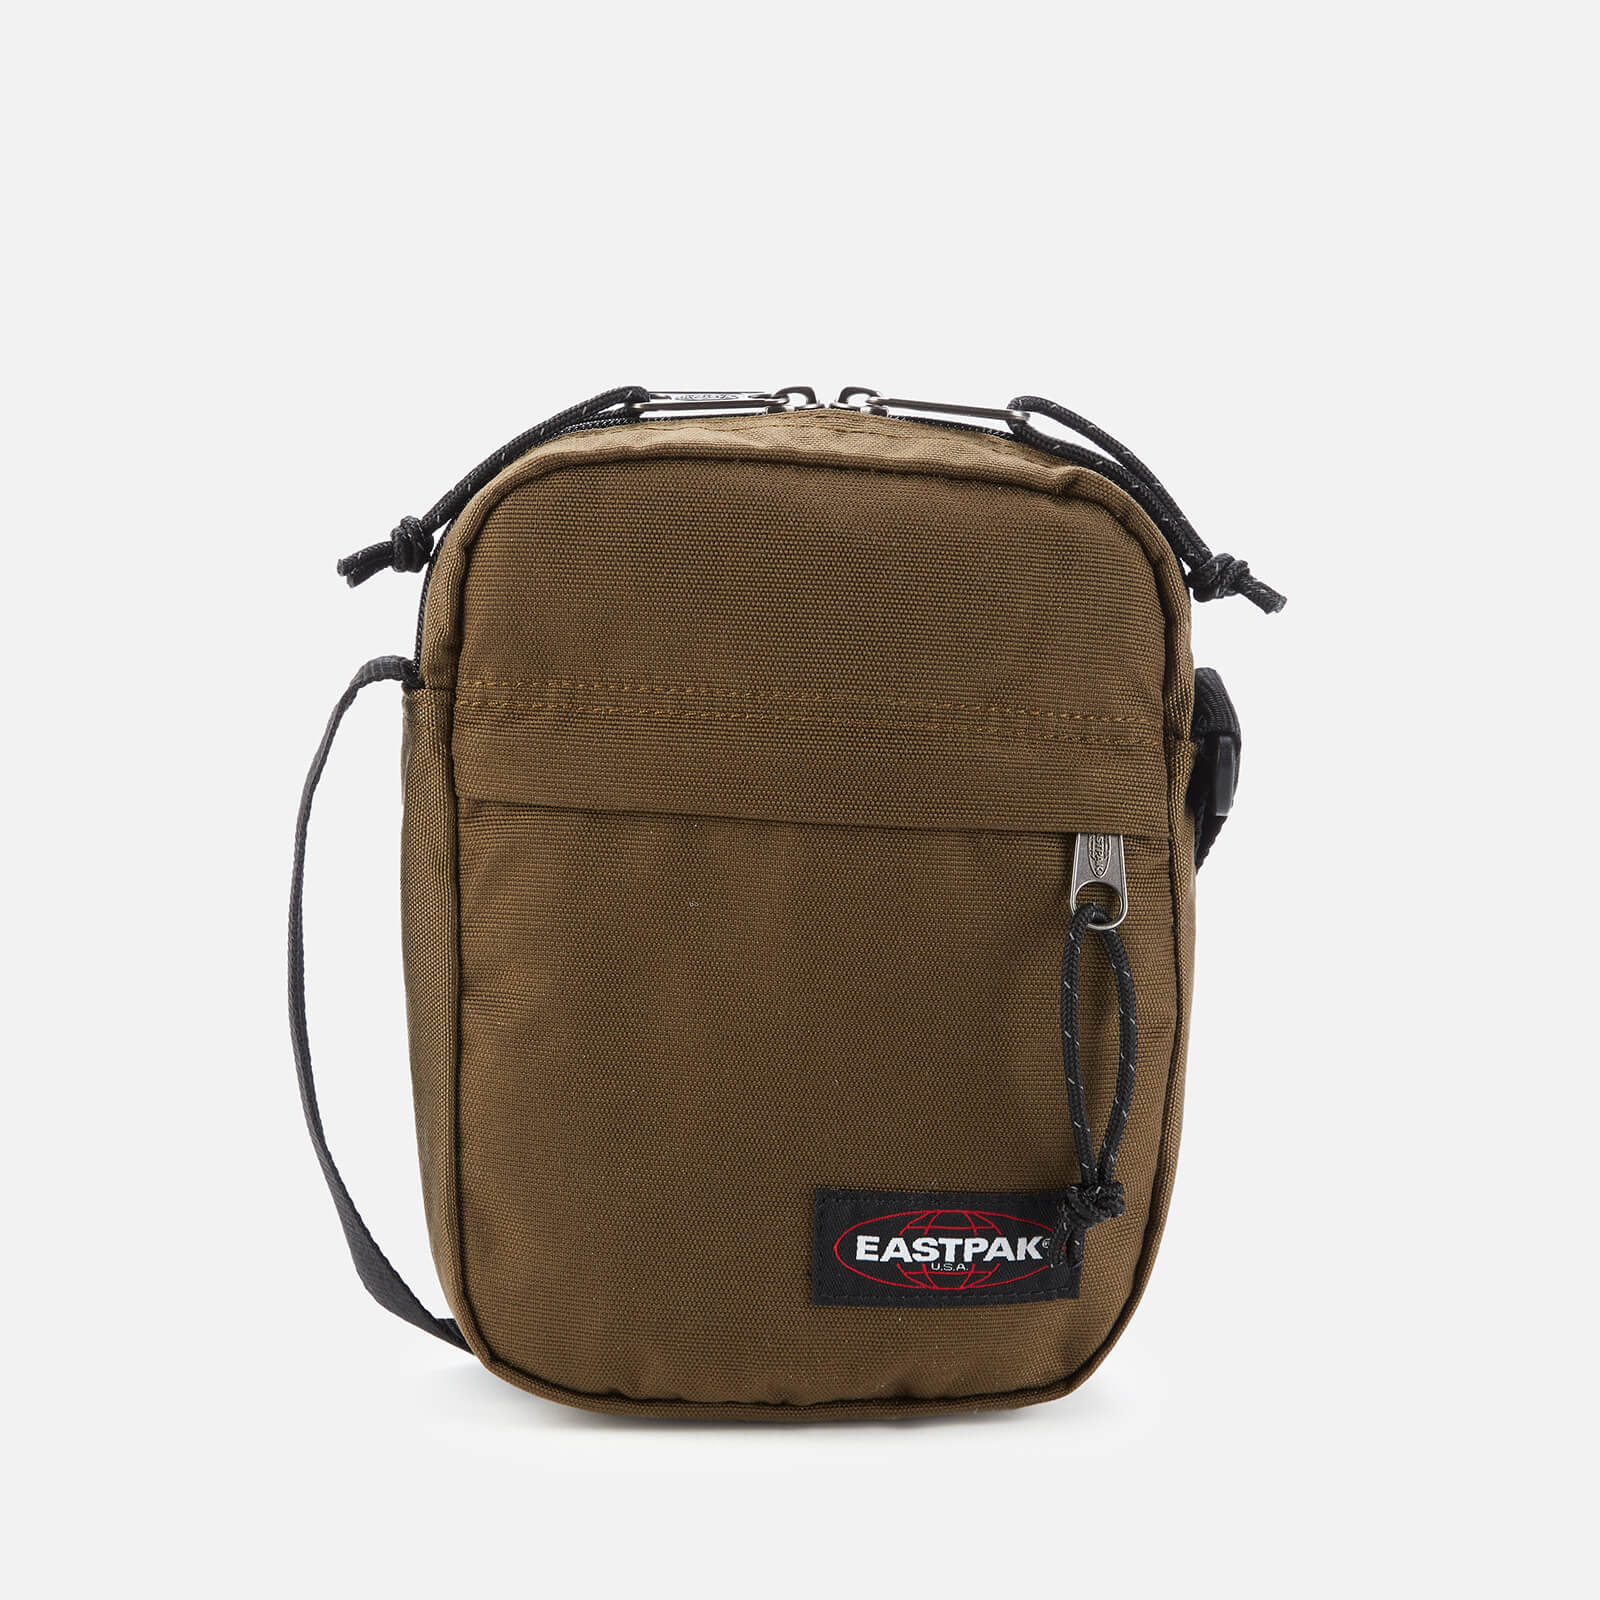 Eastpak Men's The One Cross Body Bag - Army Olive